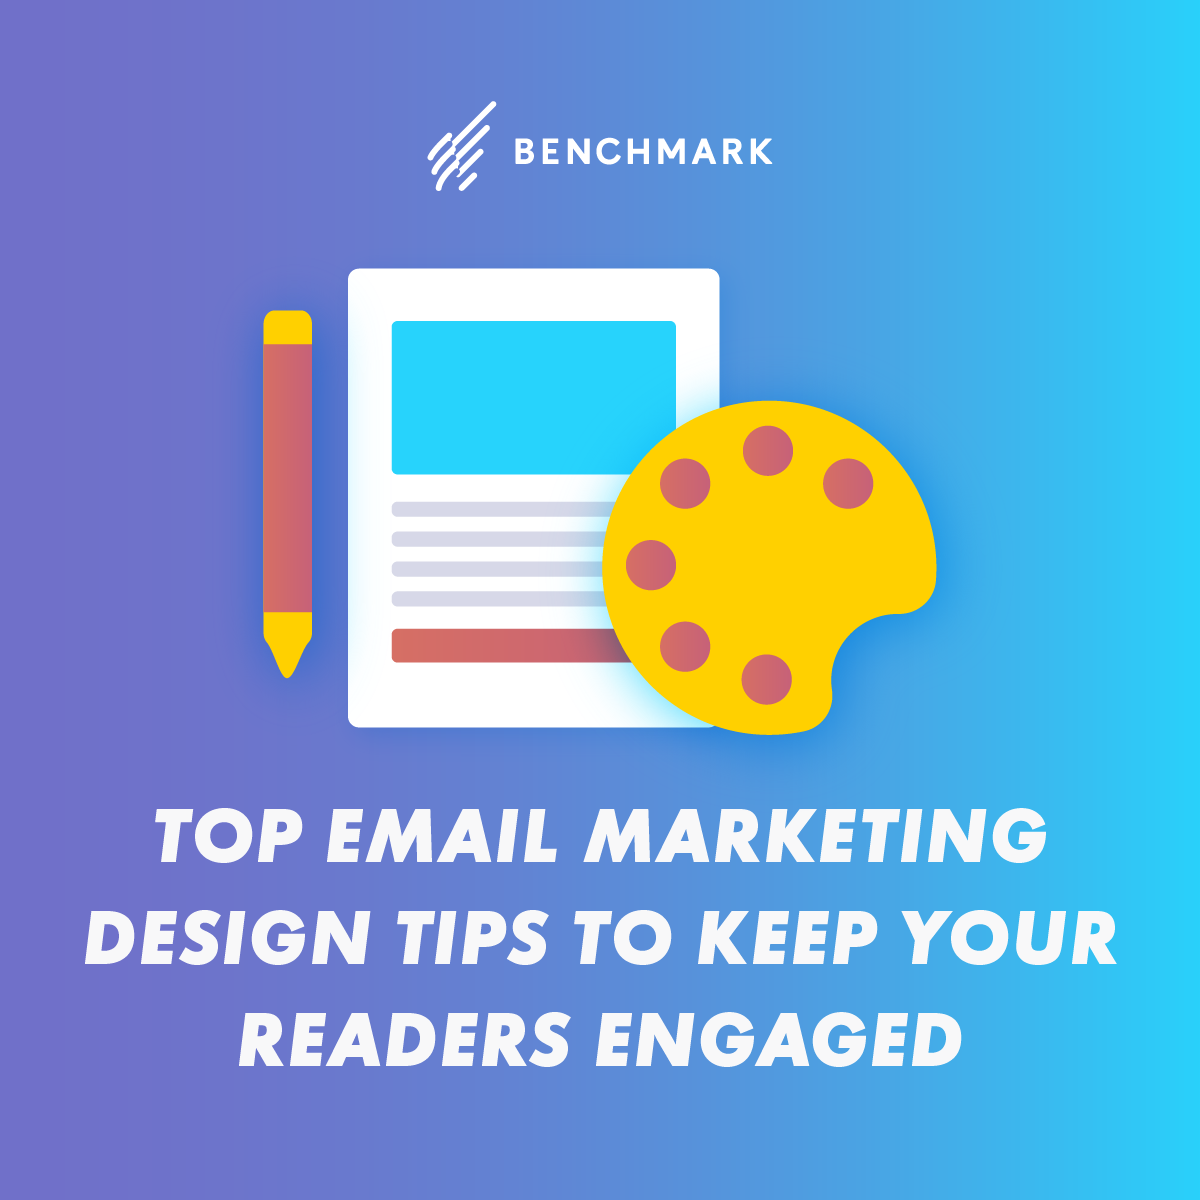 6 Top Email Marketing Design Tips to Keep Your Readers Engaged